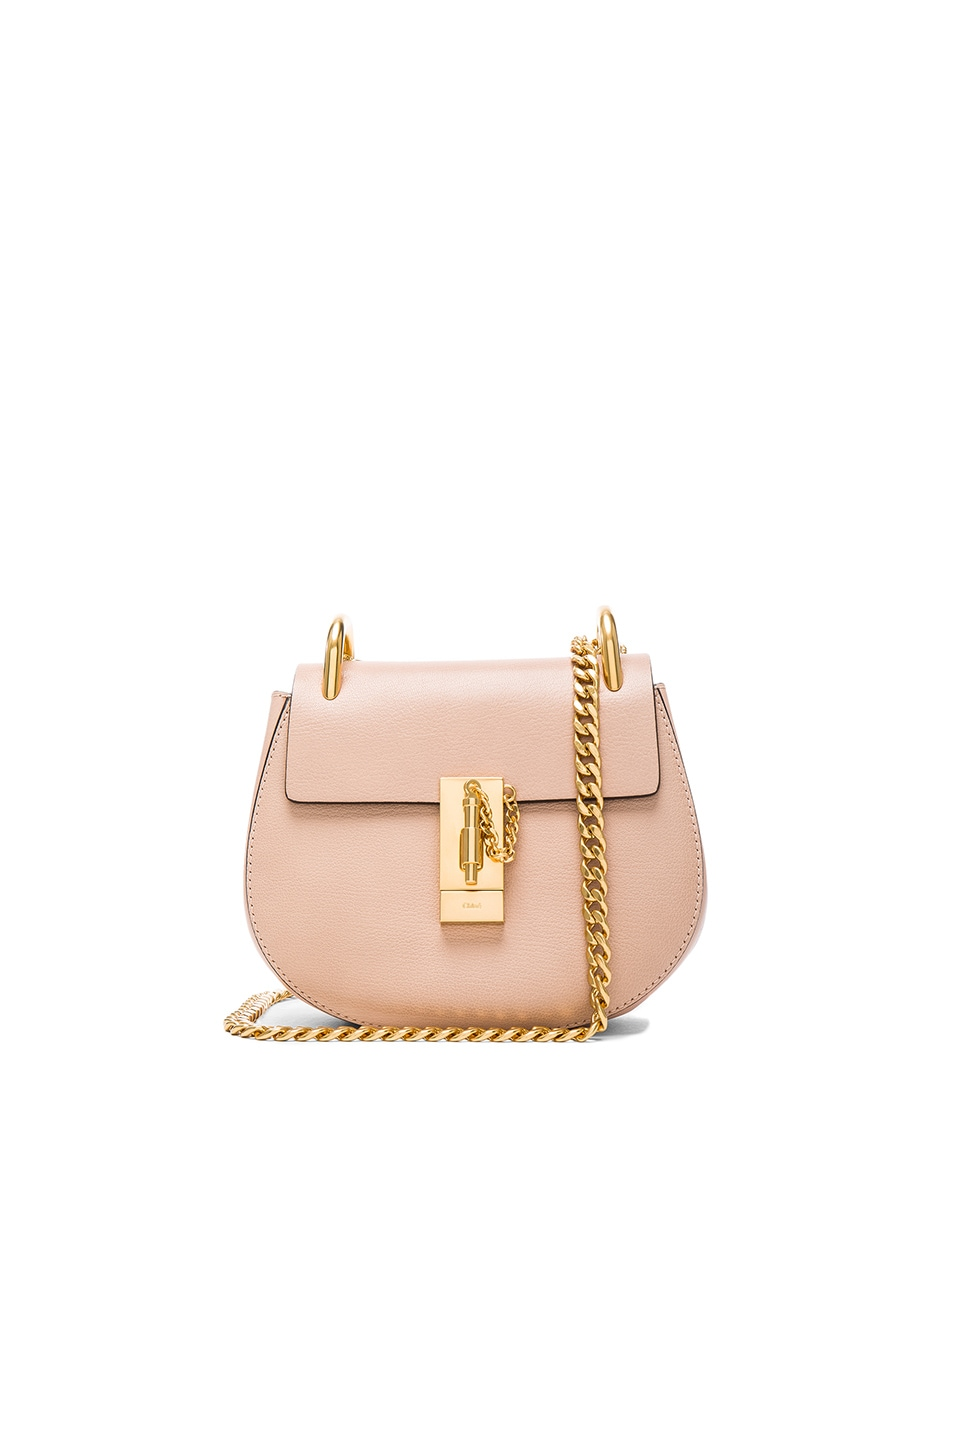 Image 1 of Chloe Mini Leather Drew Shoulder Bag in Biscotti Beige